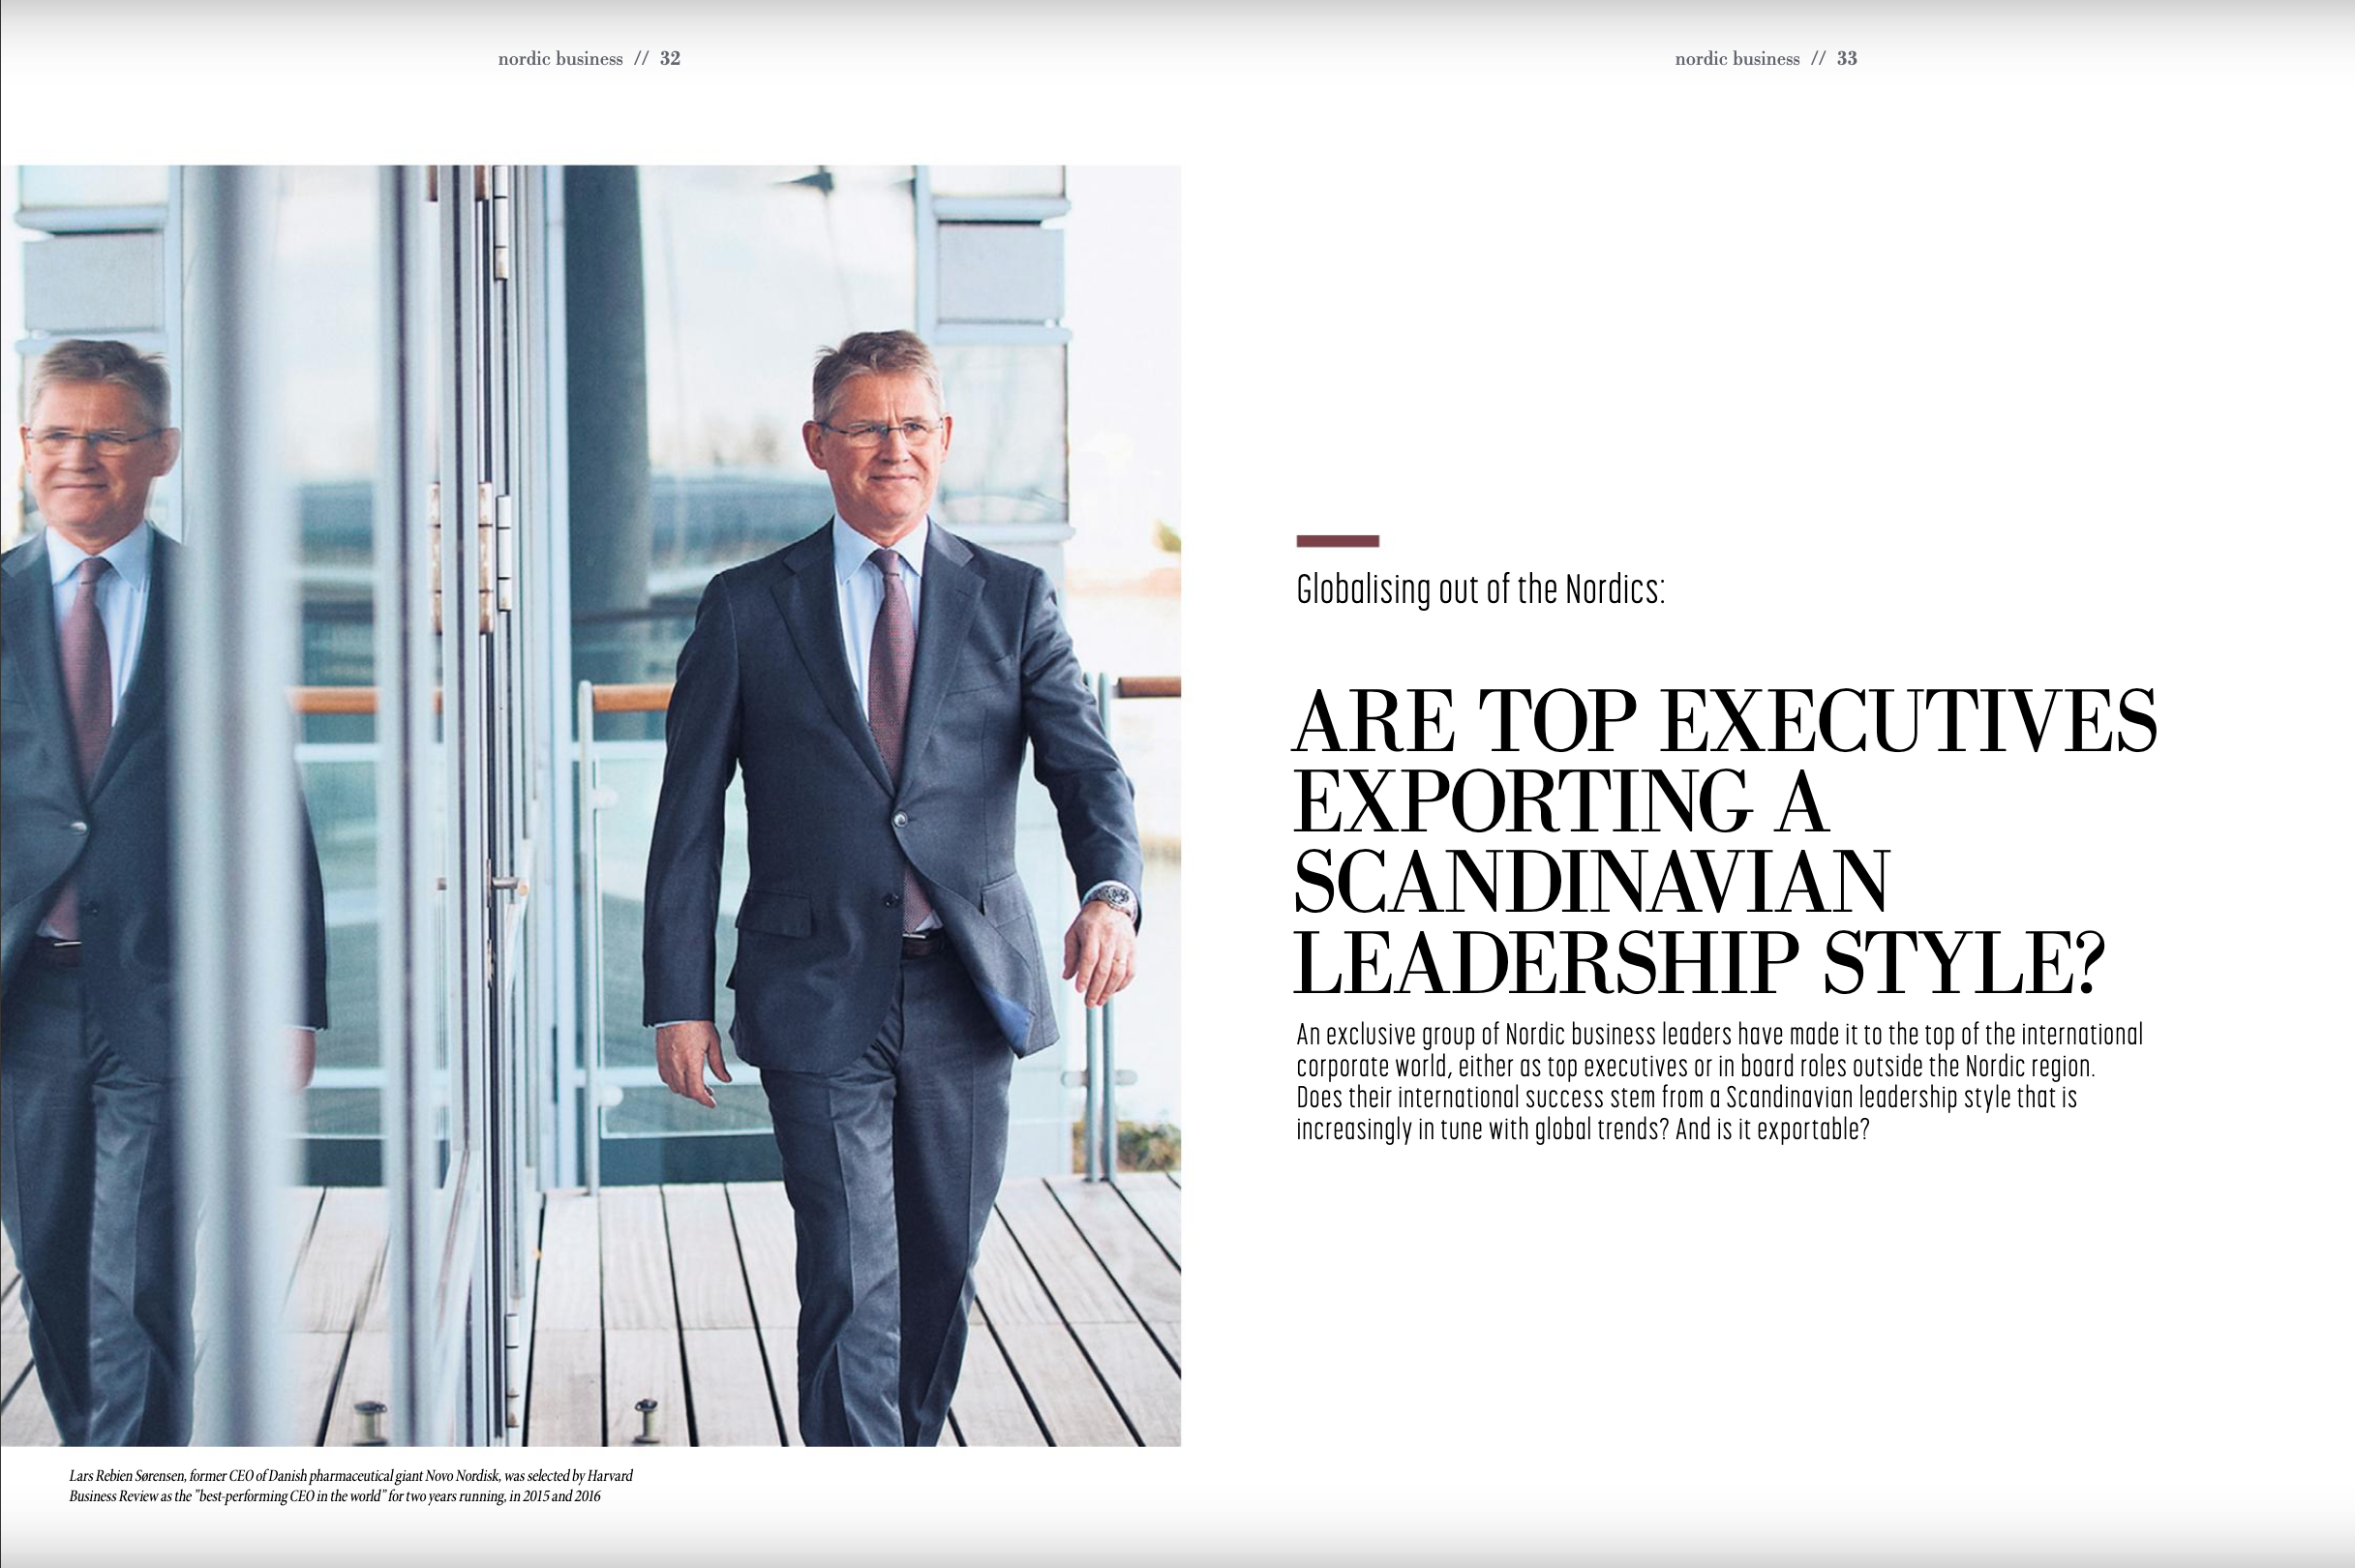 Are Top Executives Exporting a Scandinavian Leadership Style?